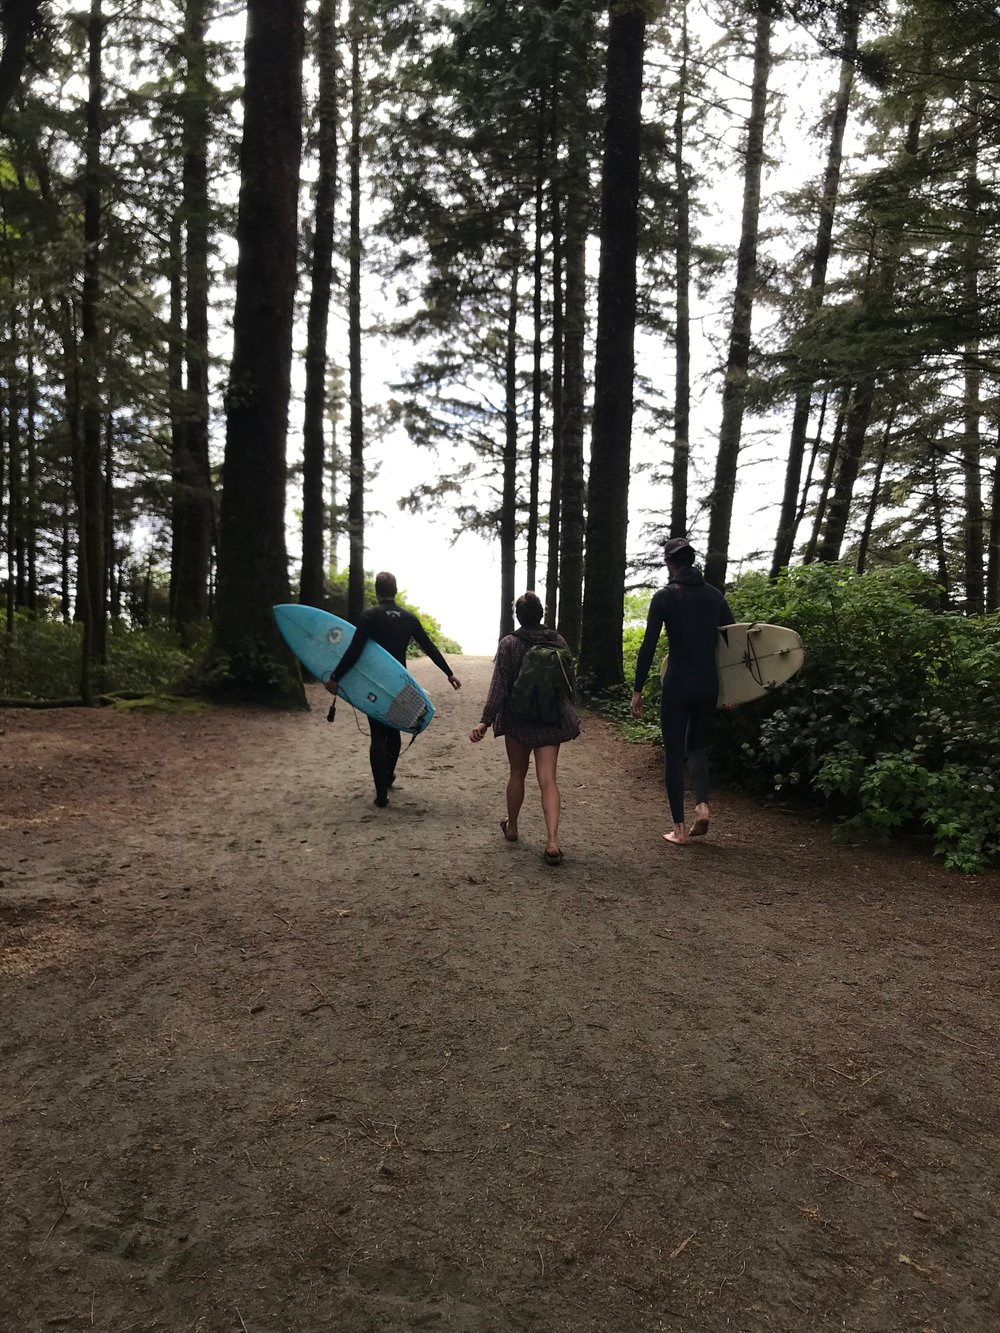 Spontaneous Trips: Tofino, British Columbia